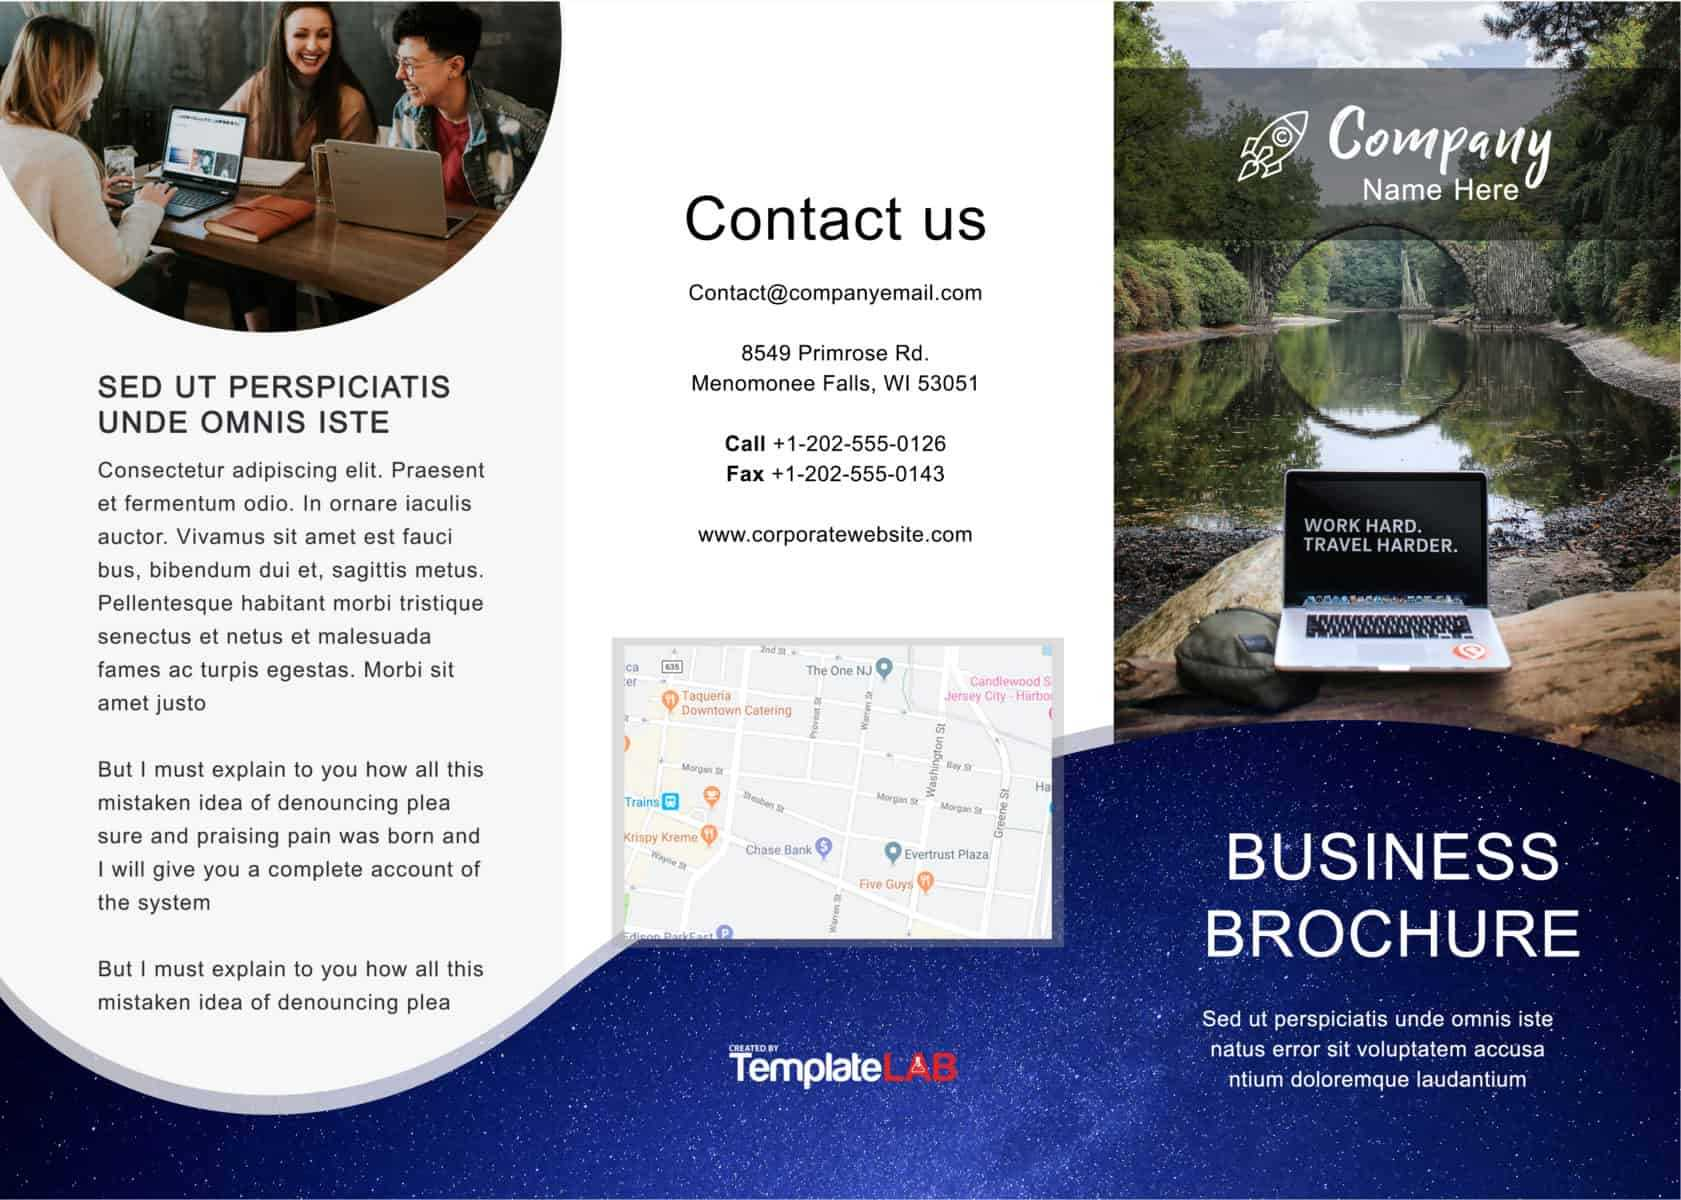 33 Free Brochure Templates (Word + Pdf) ᐅ Template Lab Inside Free Downloadable Flyer Templates